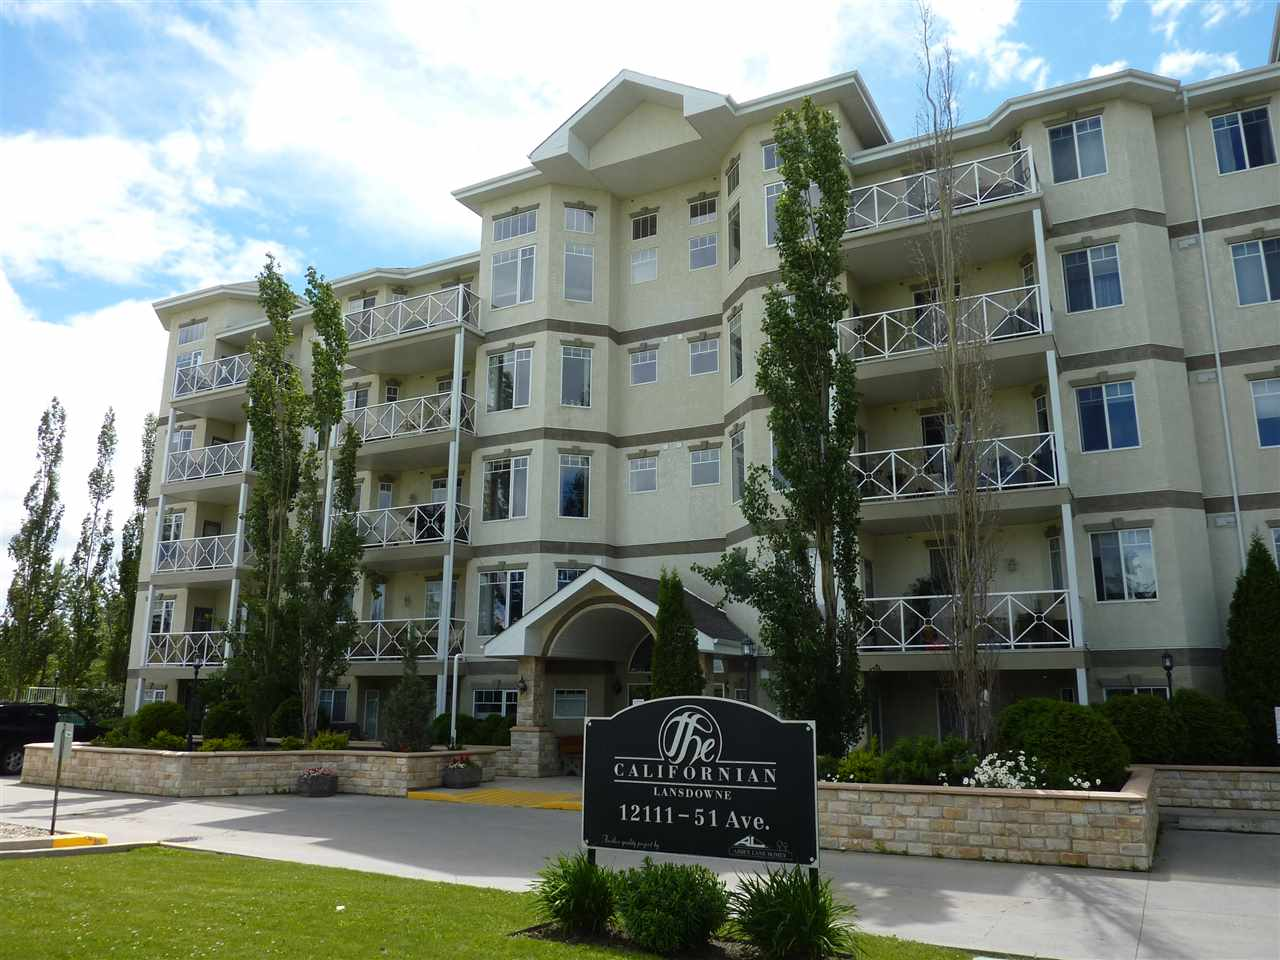 Main Photo: 316 12111 51 Avenue in Edmonton: Zone 15 Condo for sale : MLS(r) # E4070313